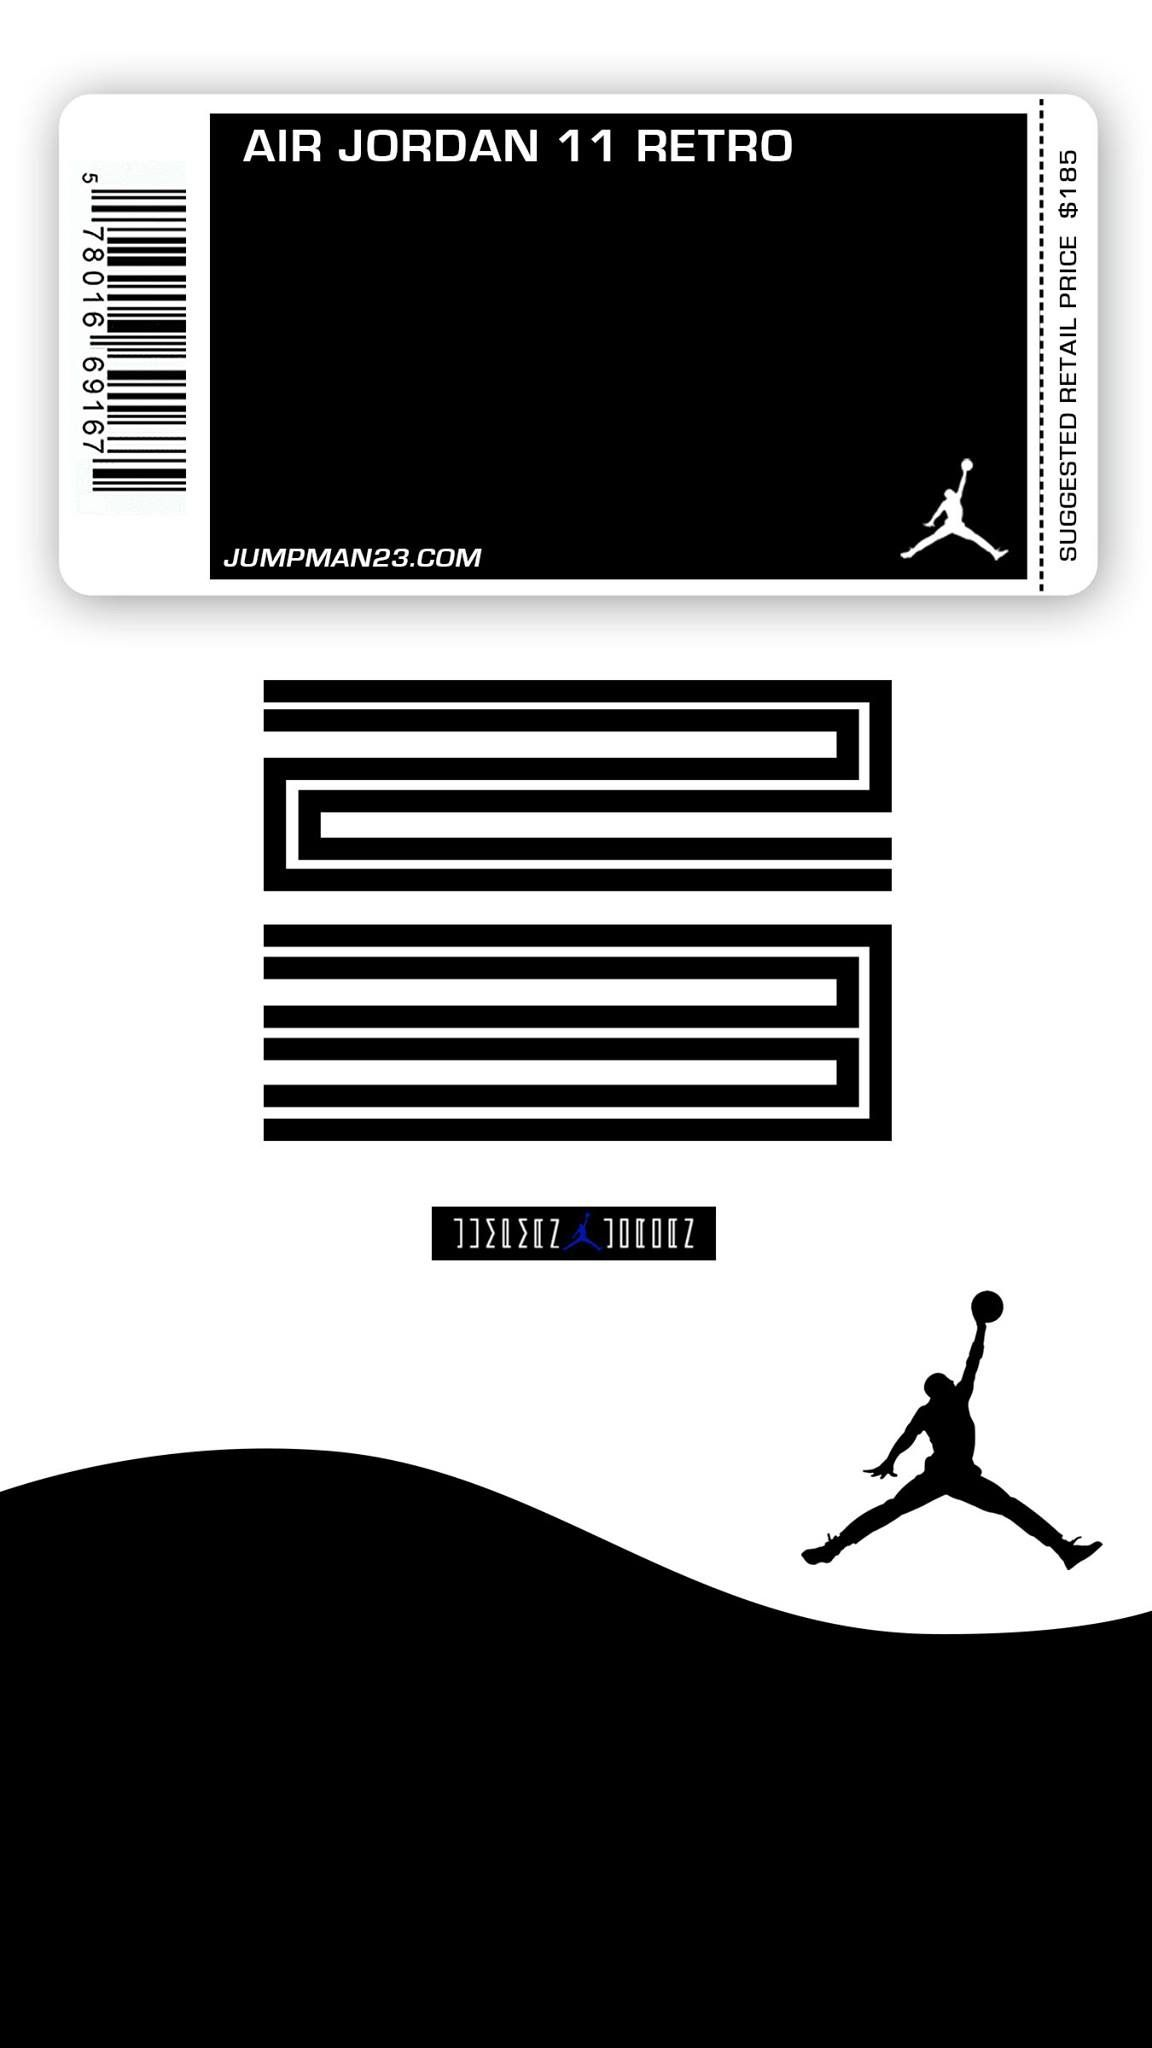 Wallpaper iphone jordan - Jordan 11 Concords Mobile Wallpaper